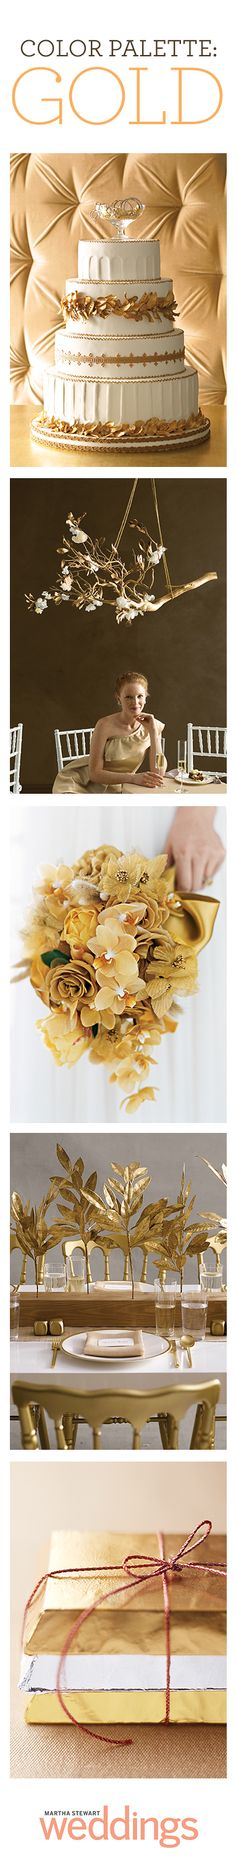 A little golden inspiration to make your wedding day really shine